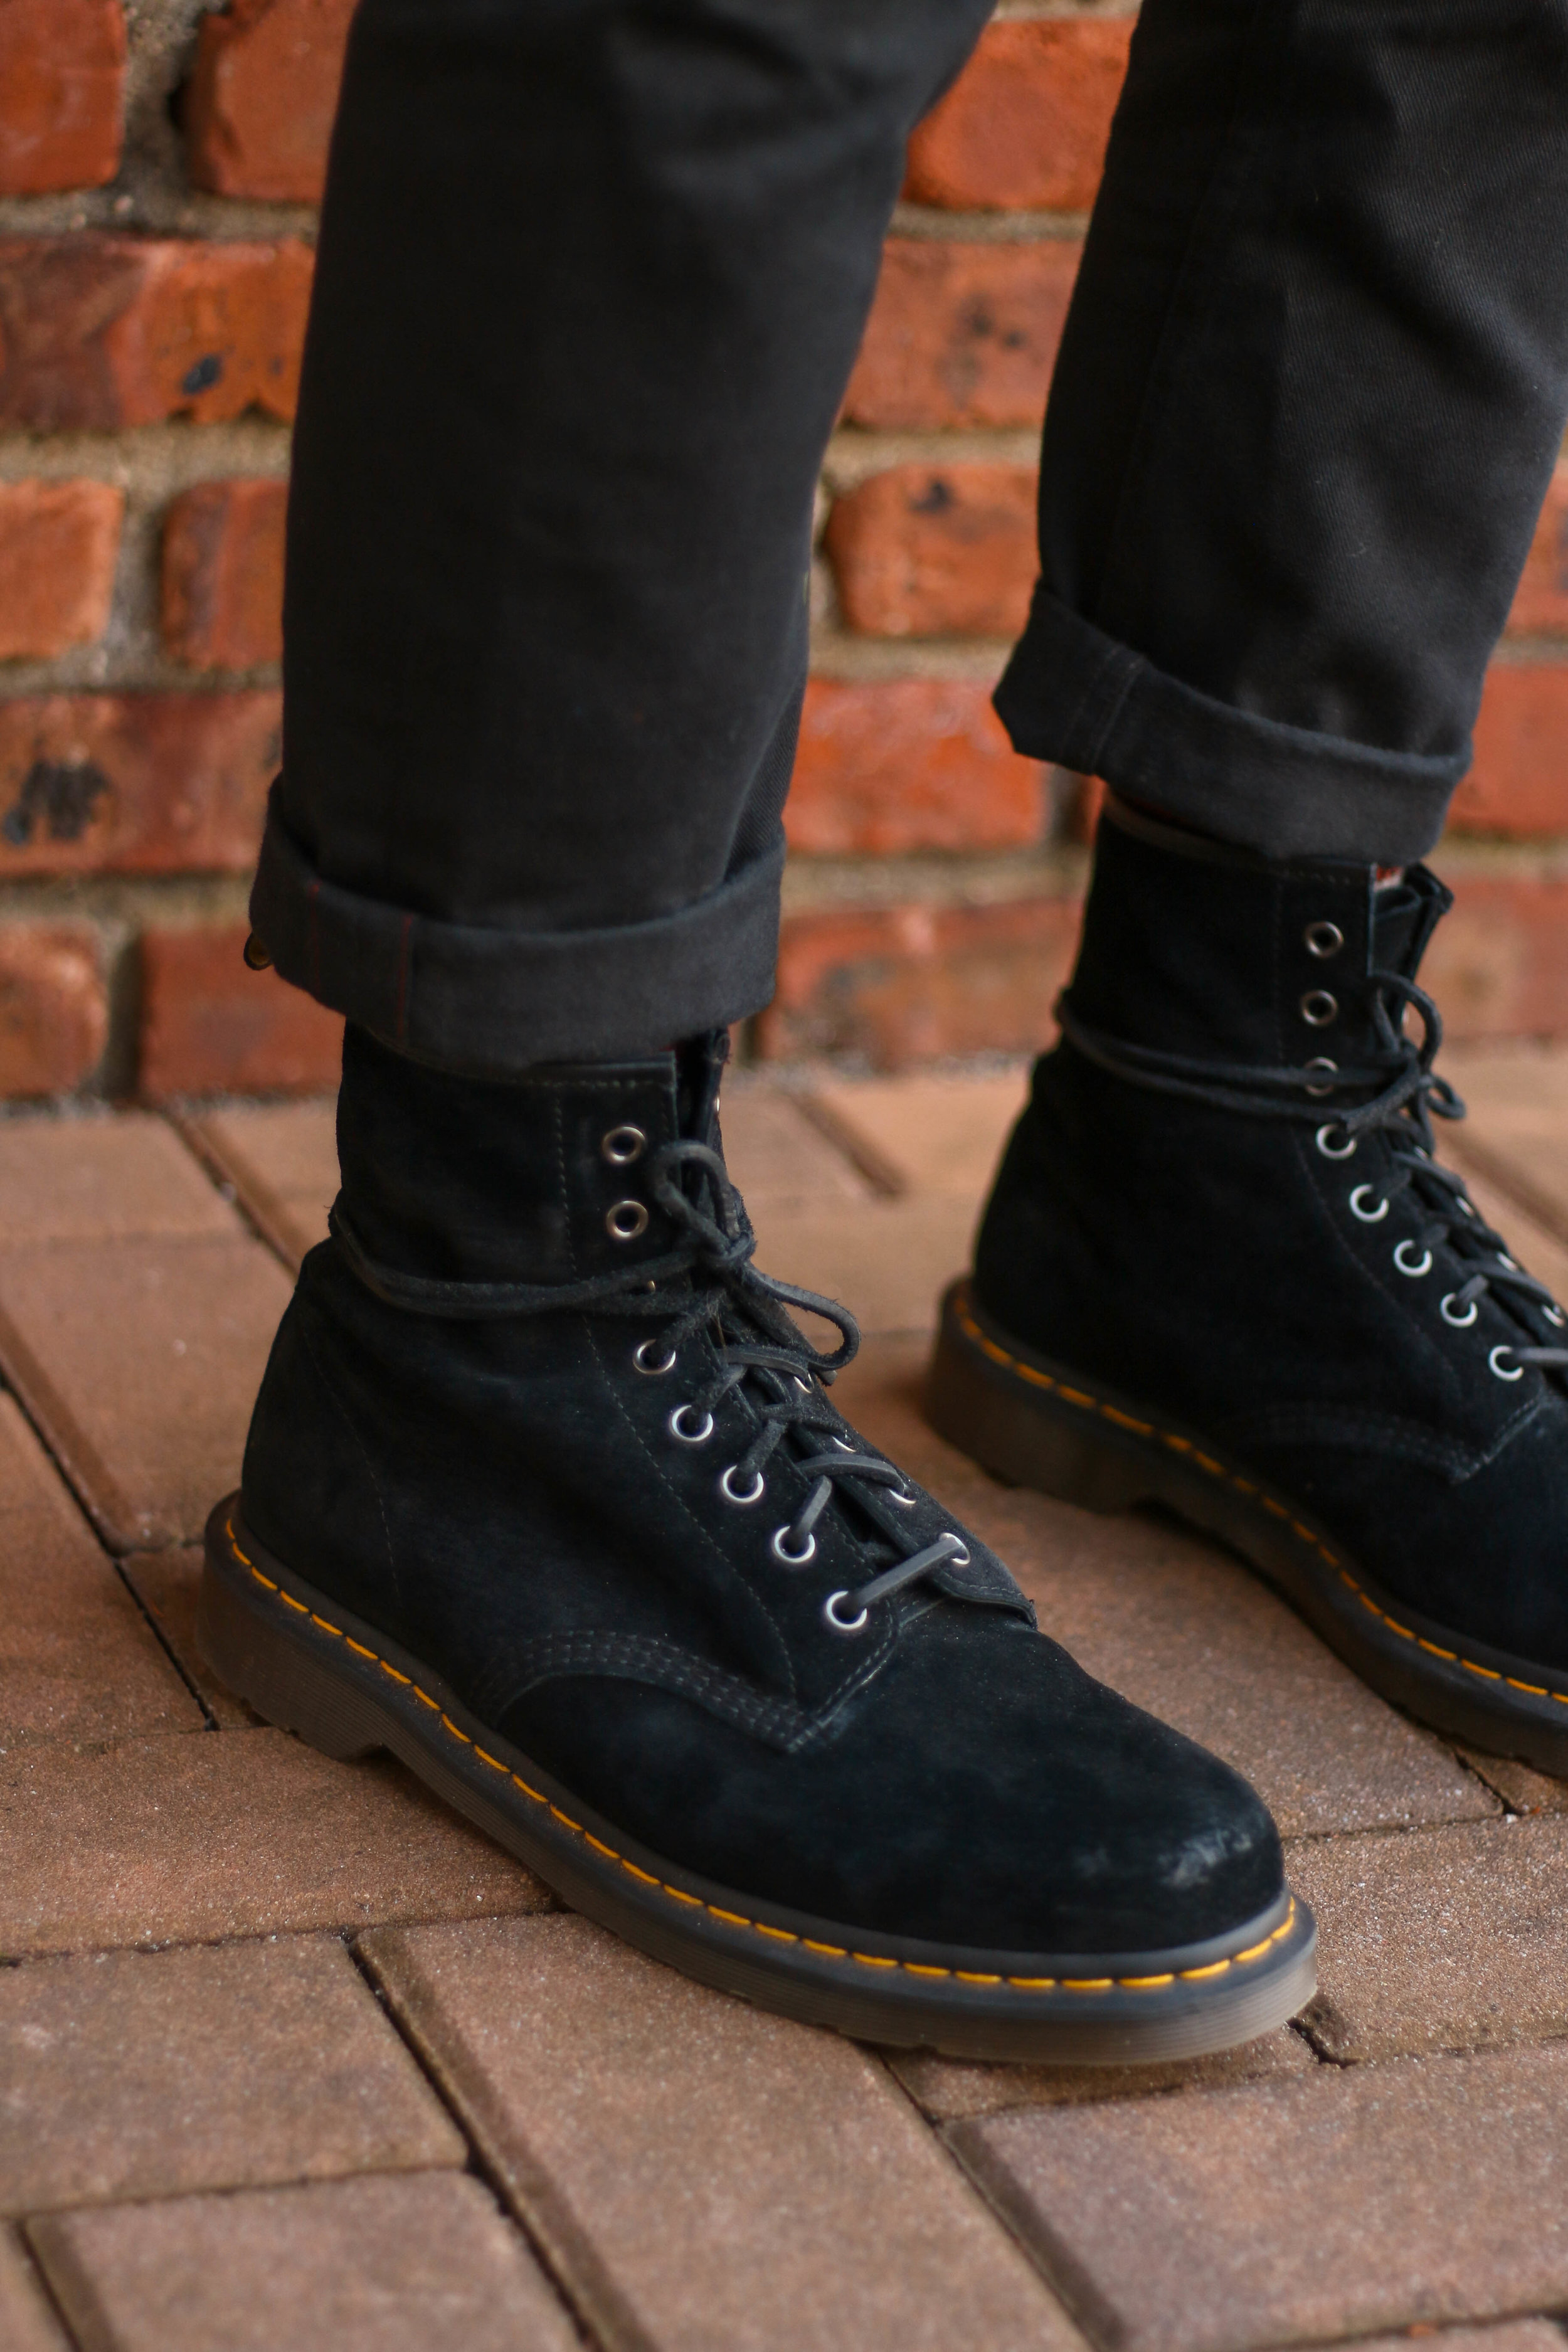 My Doc Marten 1460 in black suede paired with black selvedge military chinos from Polo Ralph Lauren.